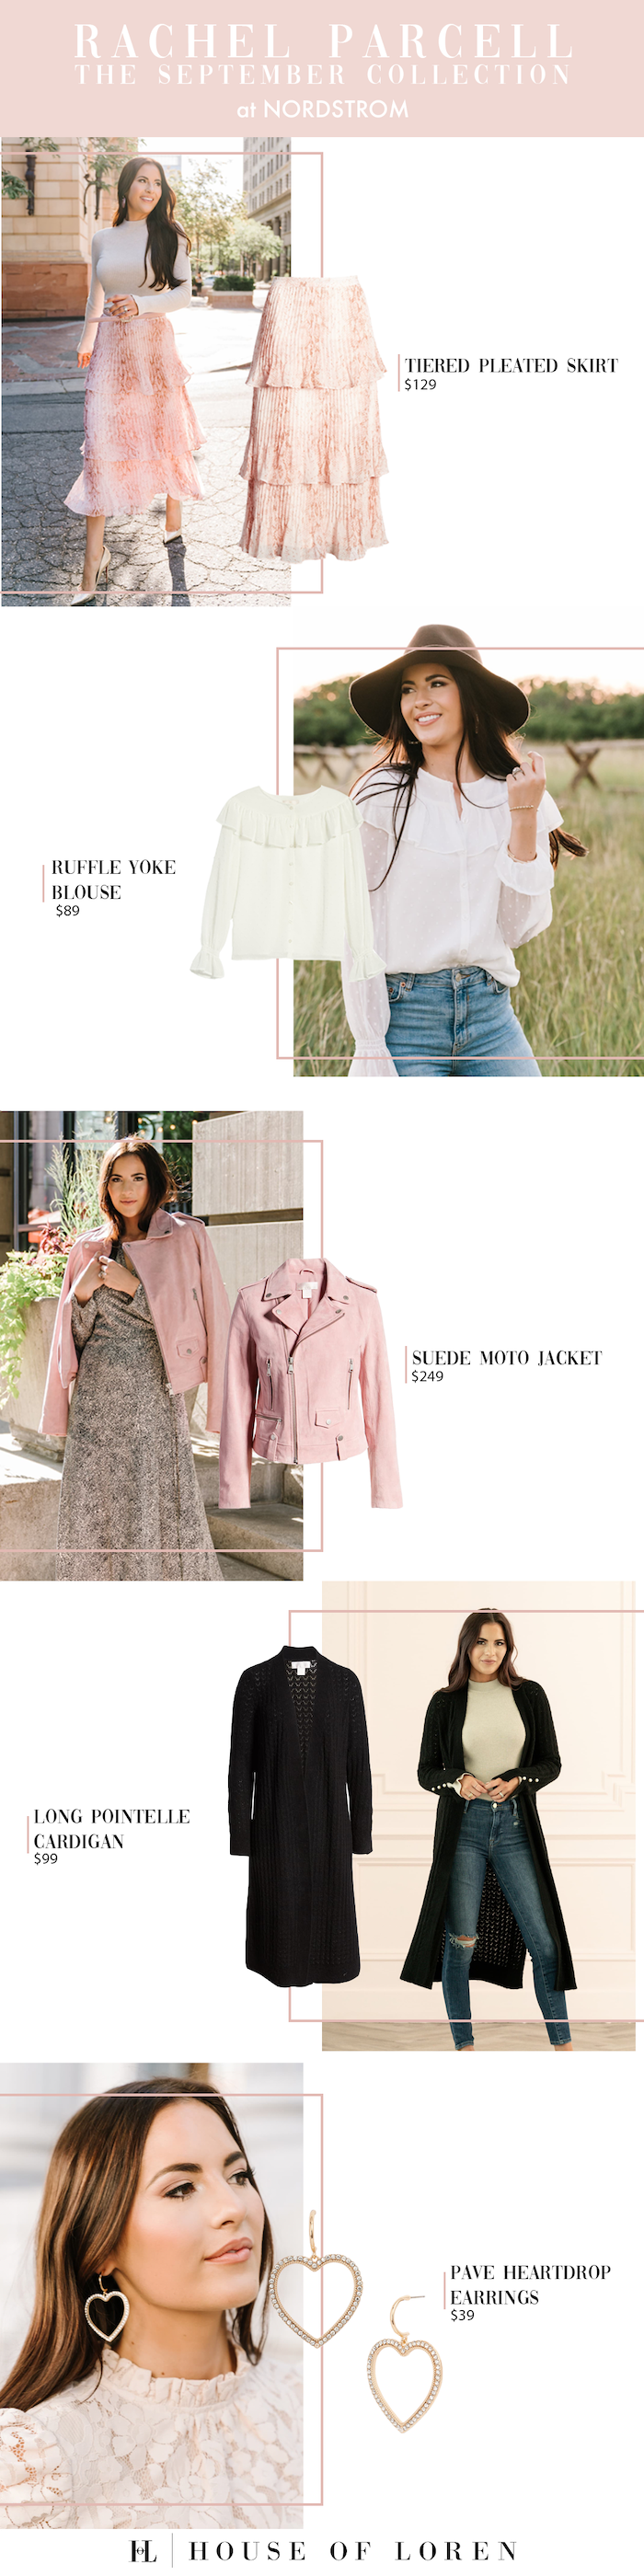 Rachel Parcell on Her Nordstrom Fall Collection